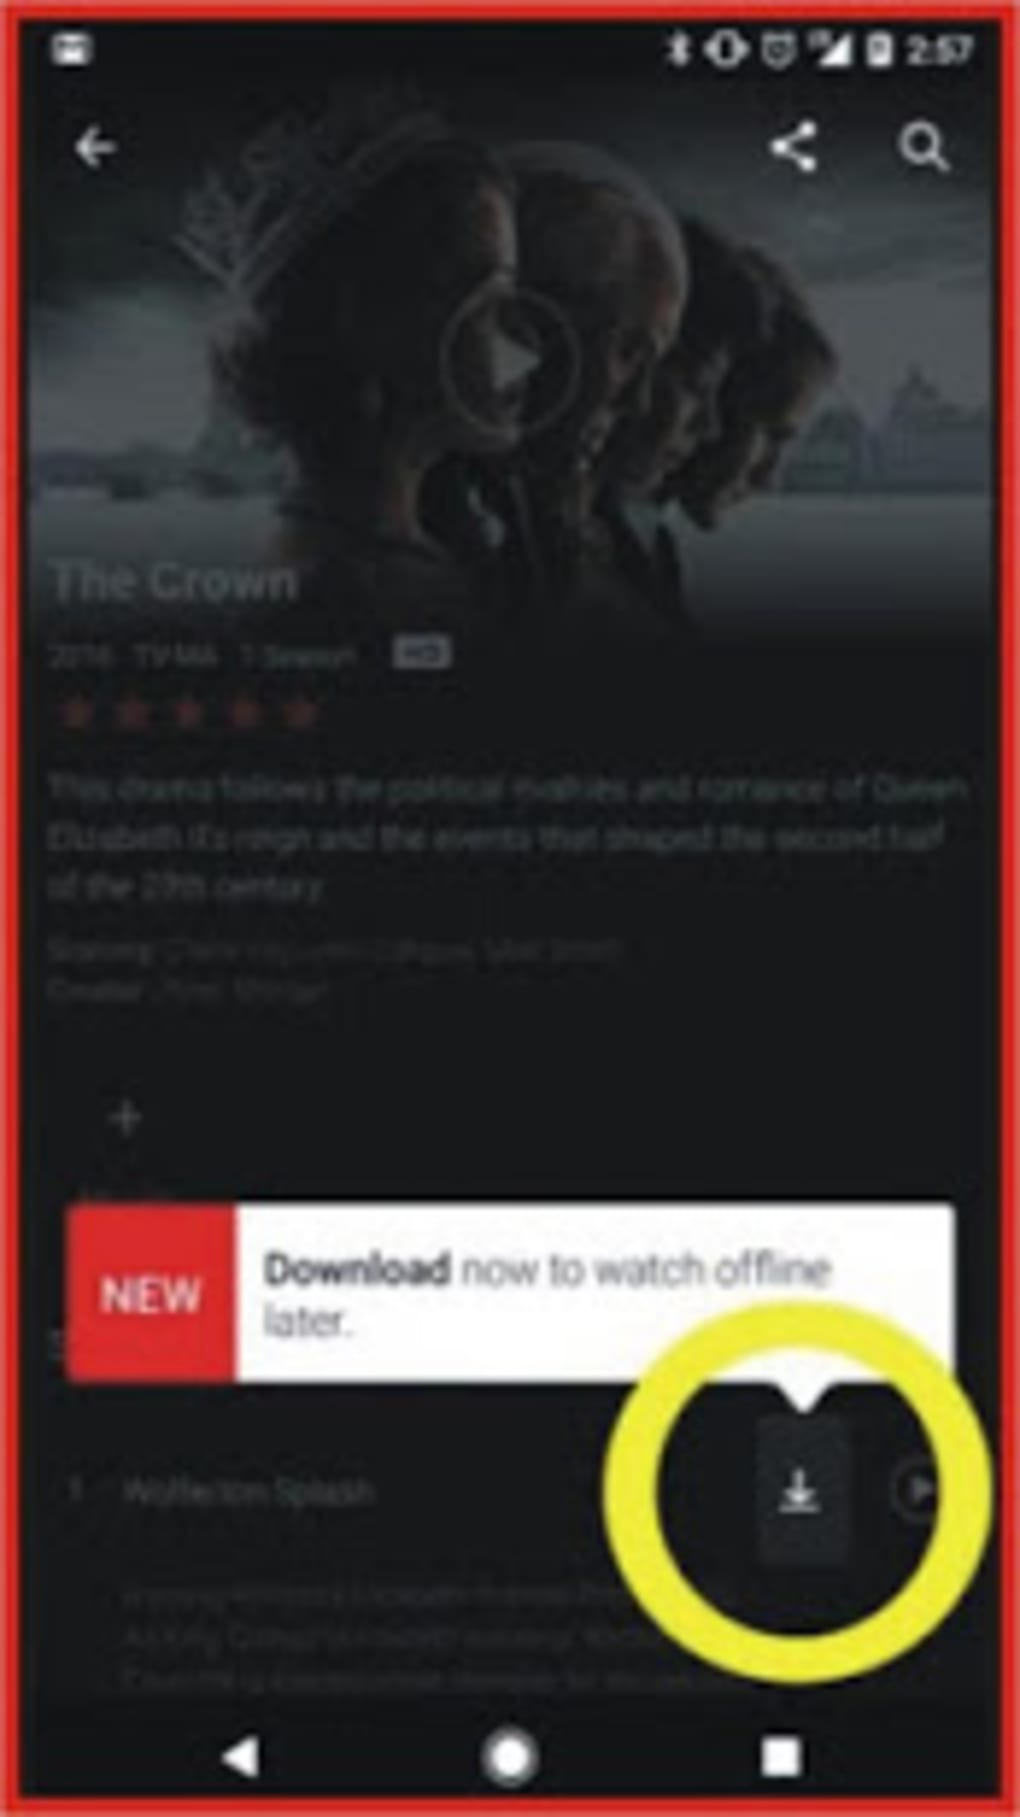 Free Netflix Movies and TV Shows info for Android - Download